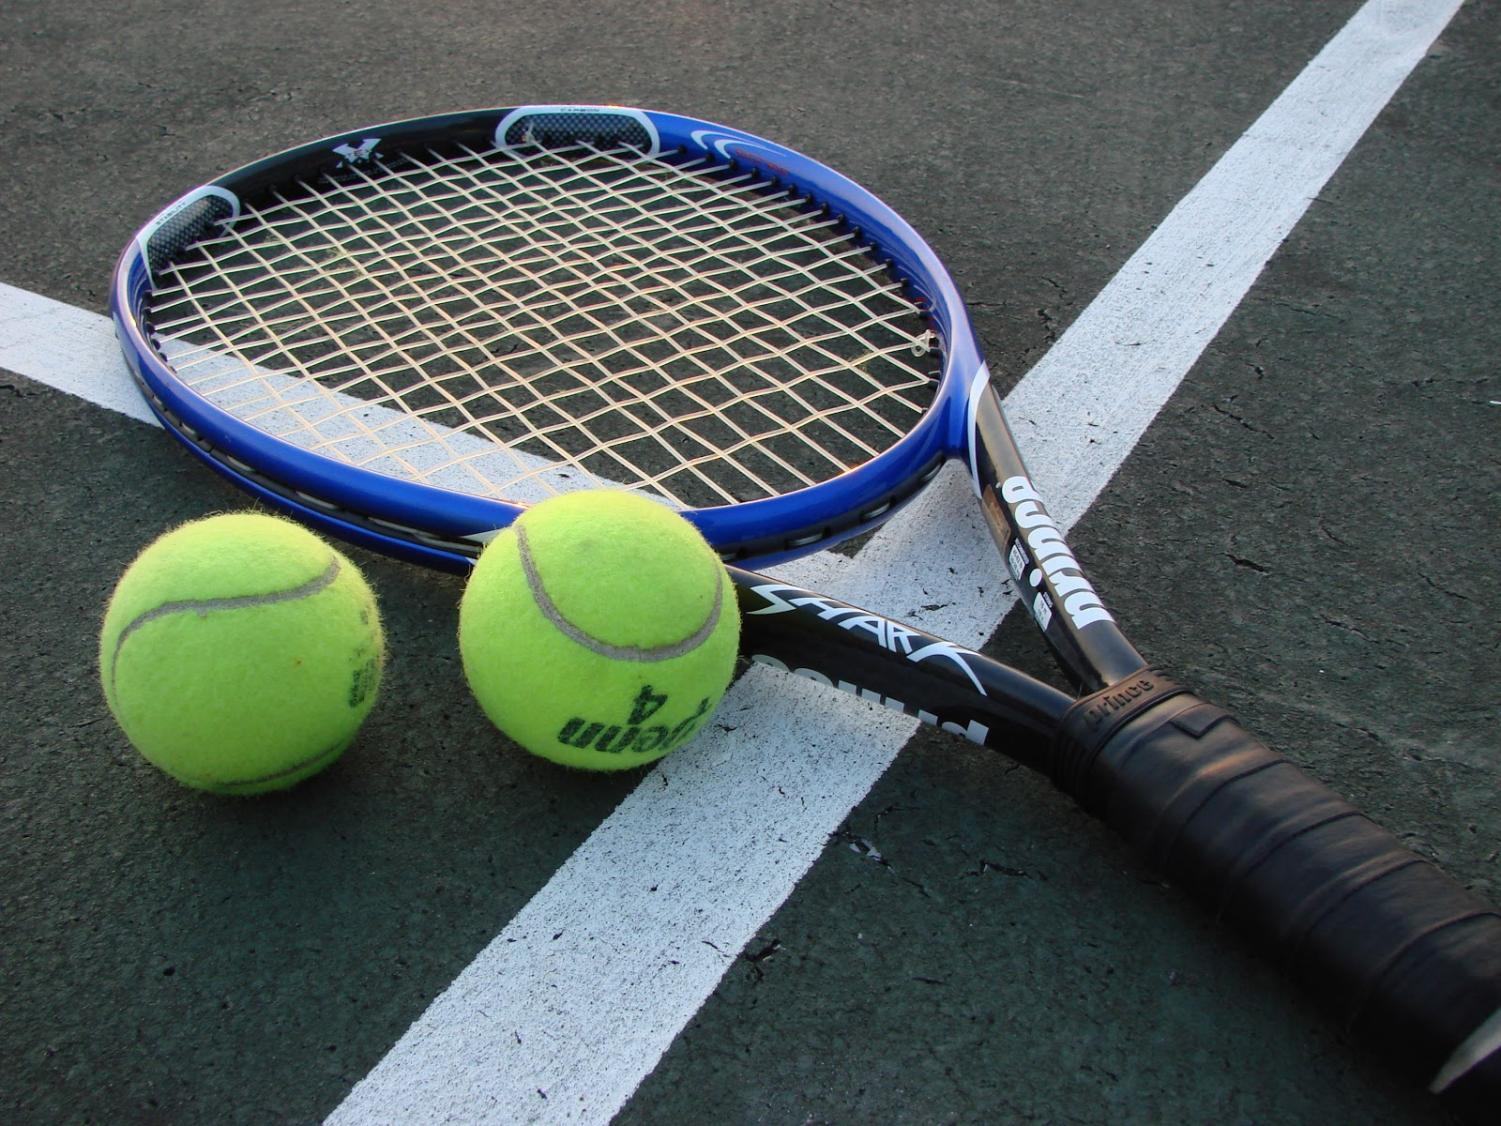 Reedy Tennis: Serving up the Competition